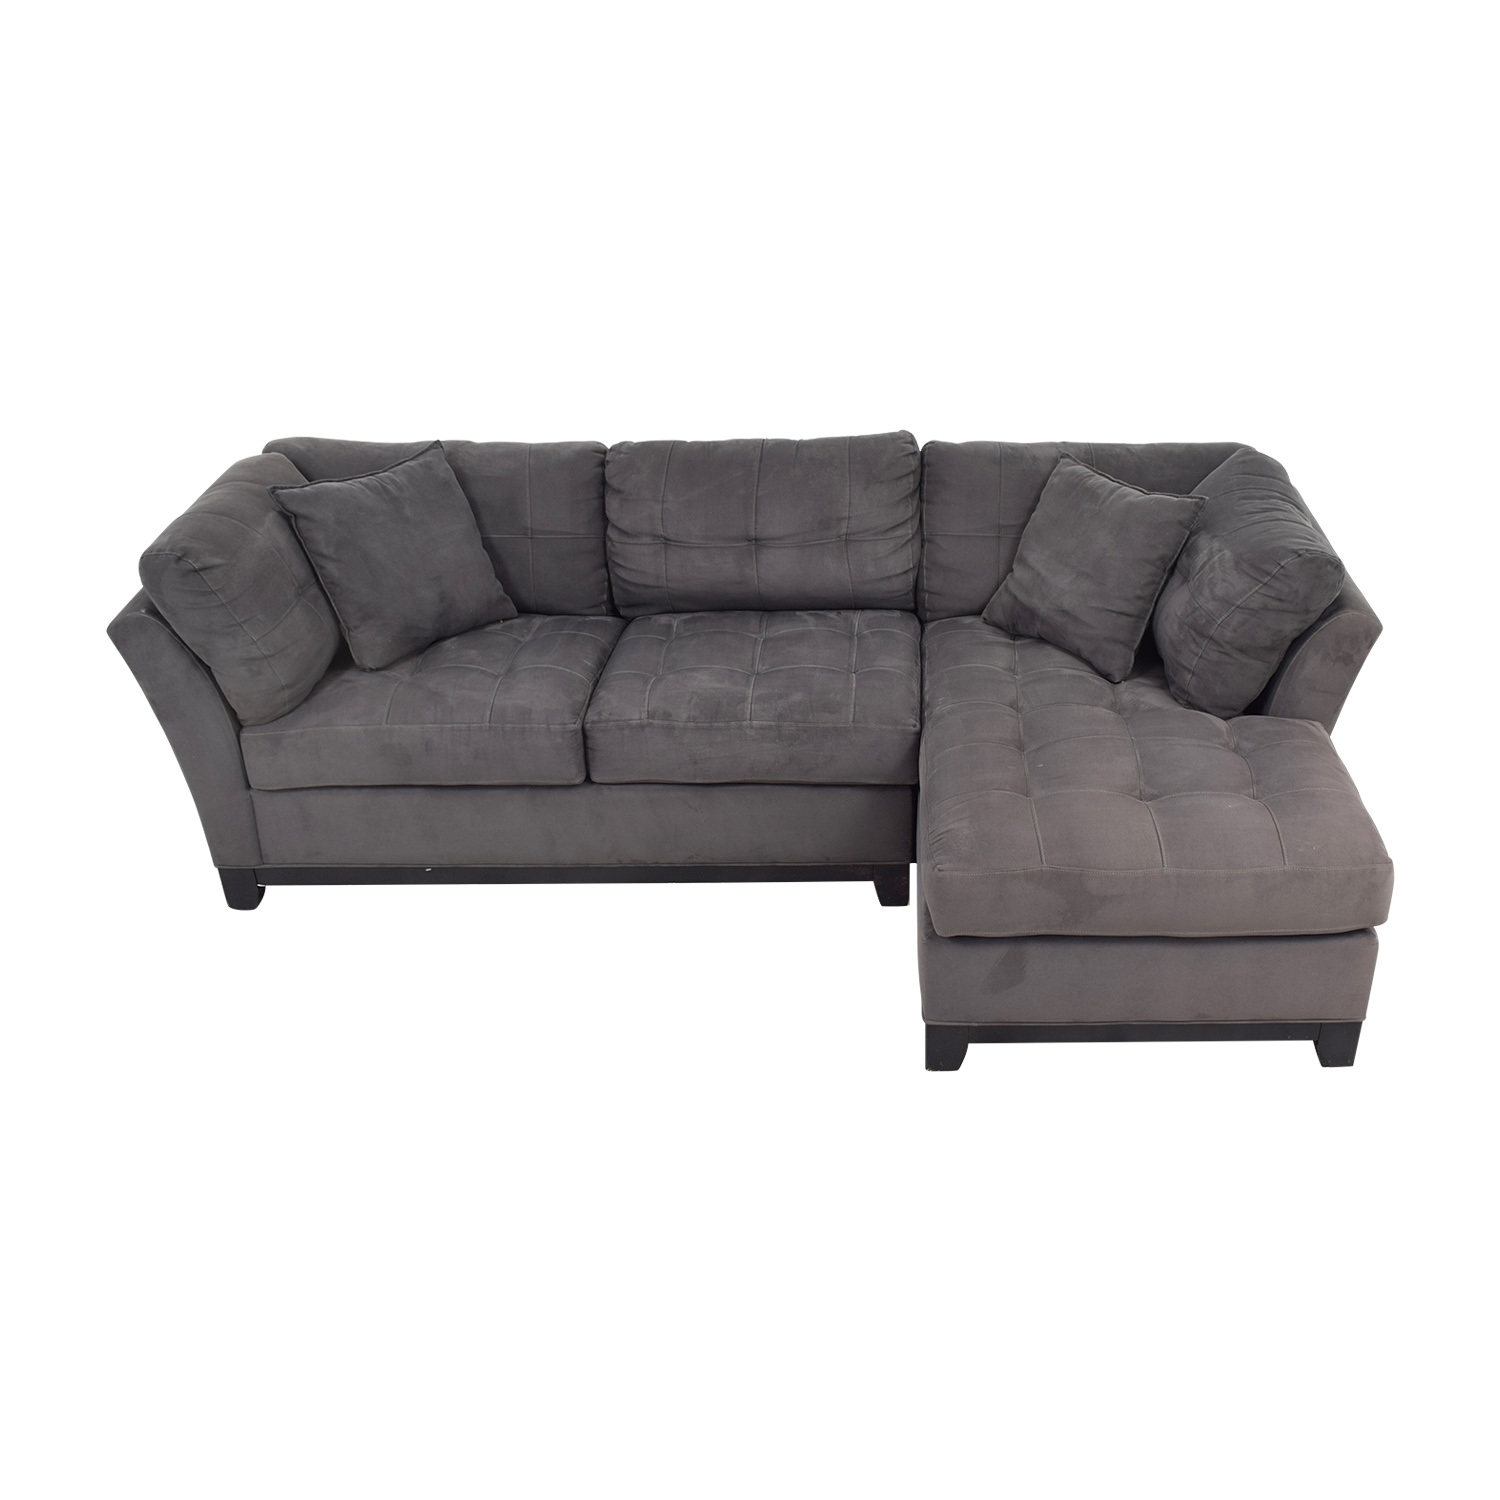 shop Raymour & Flanigan Charcoal Tufted Chaise Sectional Raymour & Flanigan Sectionals